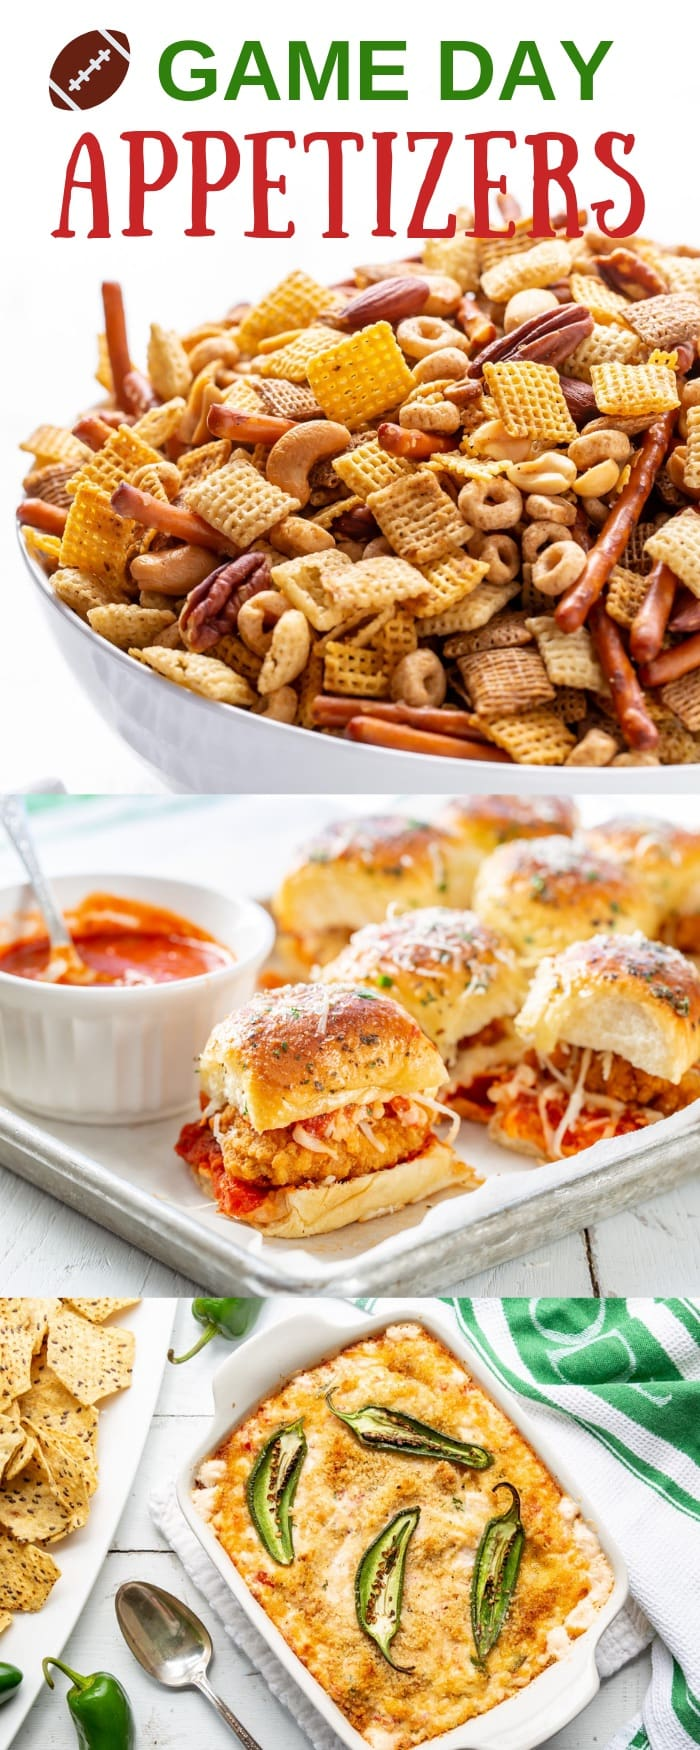 Game Day Appetizers and Desserts - Thrill your favorite football fans with plenty of delicious snacking options while cheering from the sidelines. With dips and sliders and a few sweet treats! #gameday #appetizers #footballfood #snacks #partyfood #treats